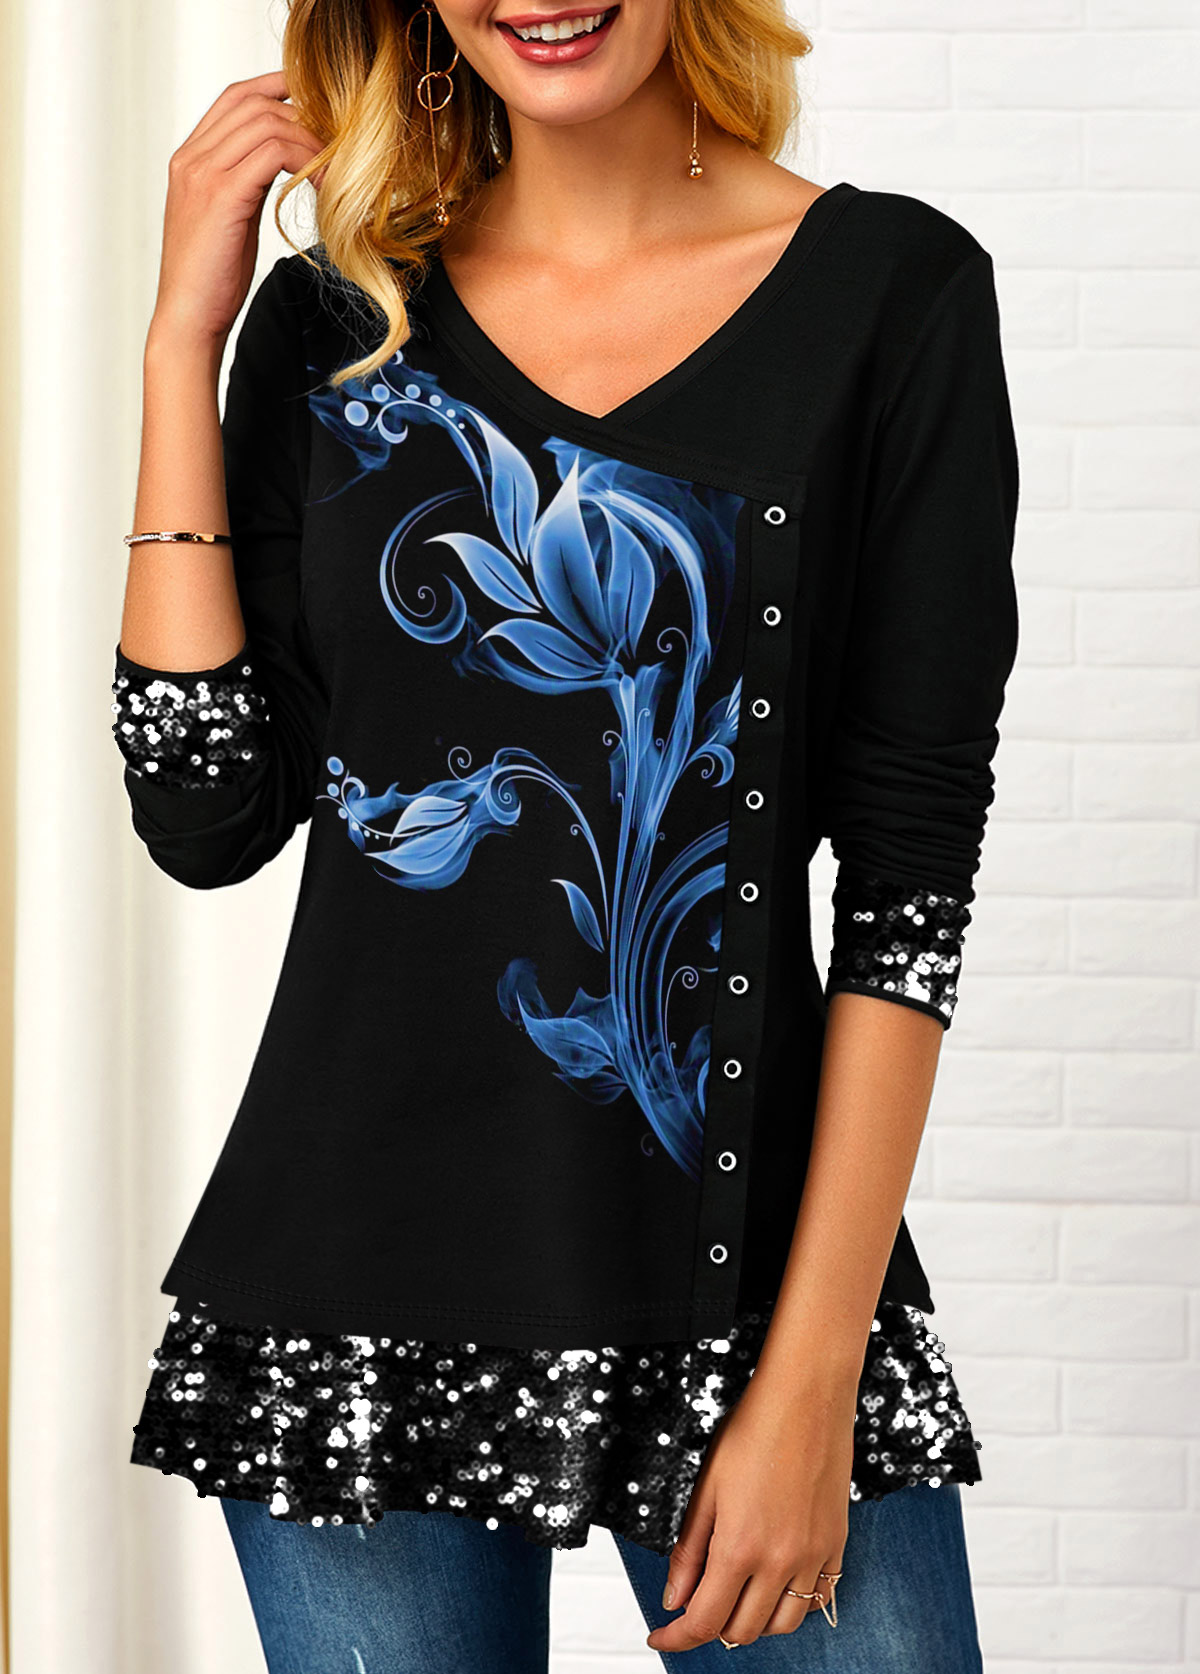 Sequin Detail Inclined Button Printed T Shirt